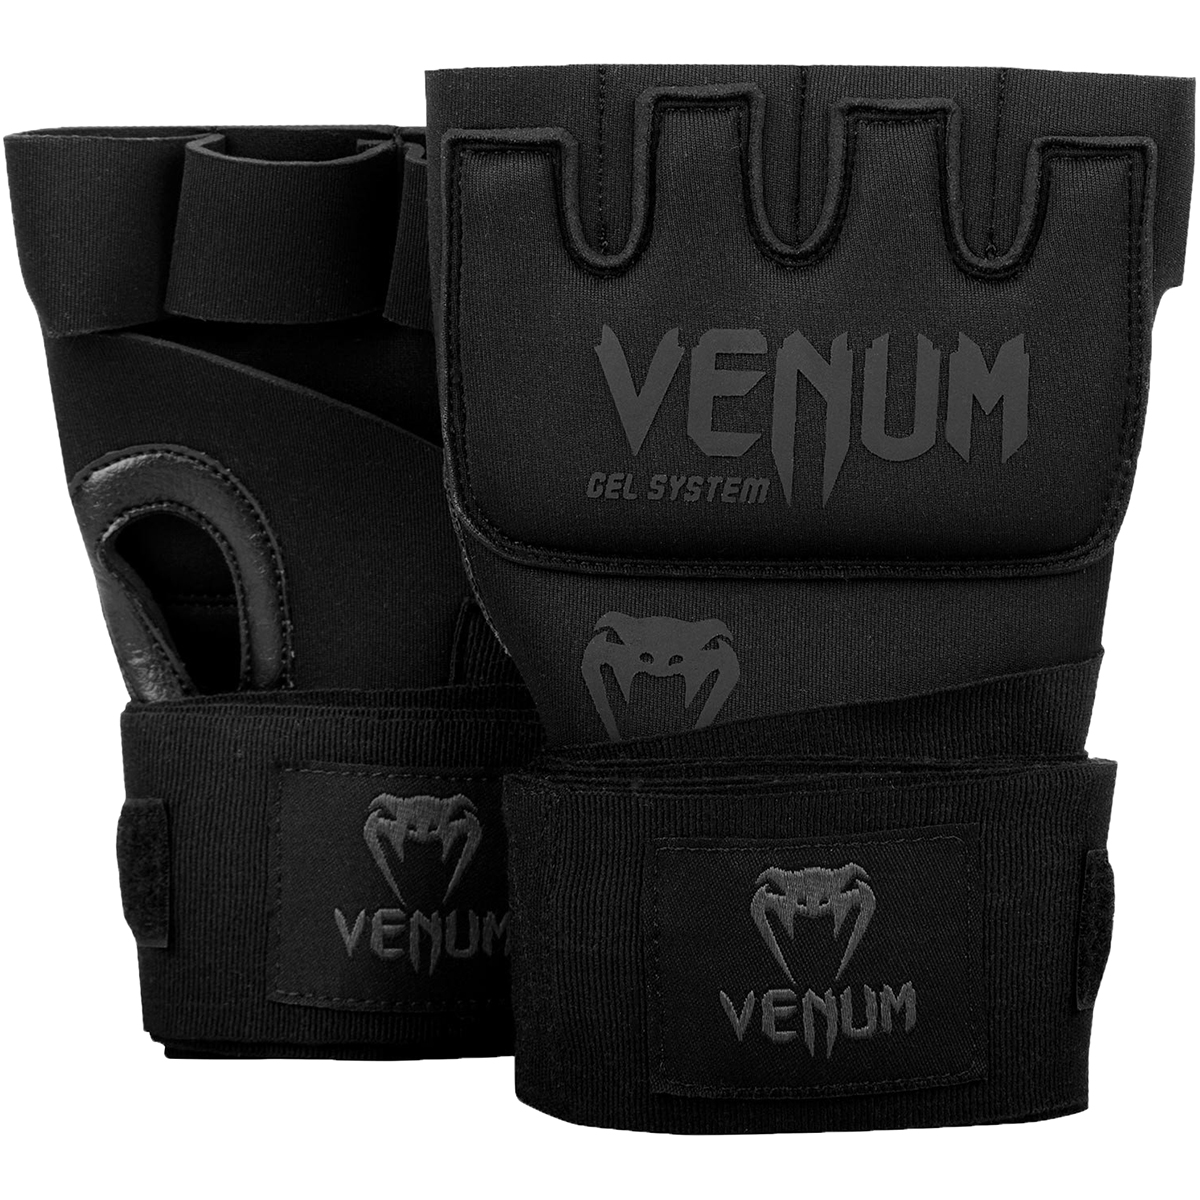 Venum-Kontact-Protective-Shock-Absorbing-Gel-MMA-Glove-Wraps thumbnail 2